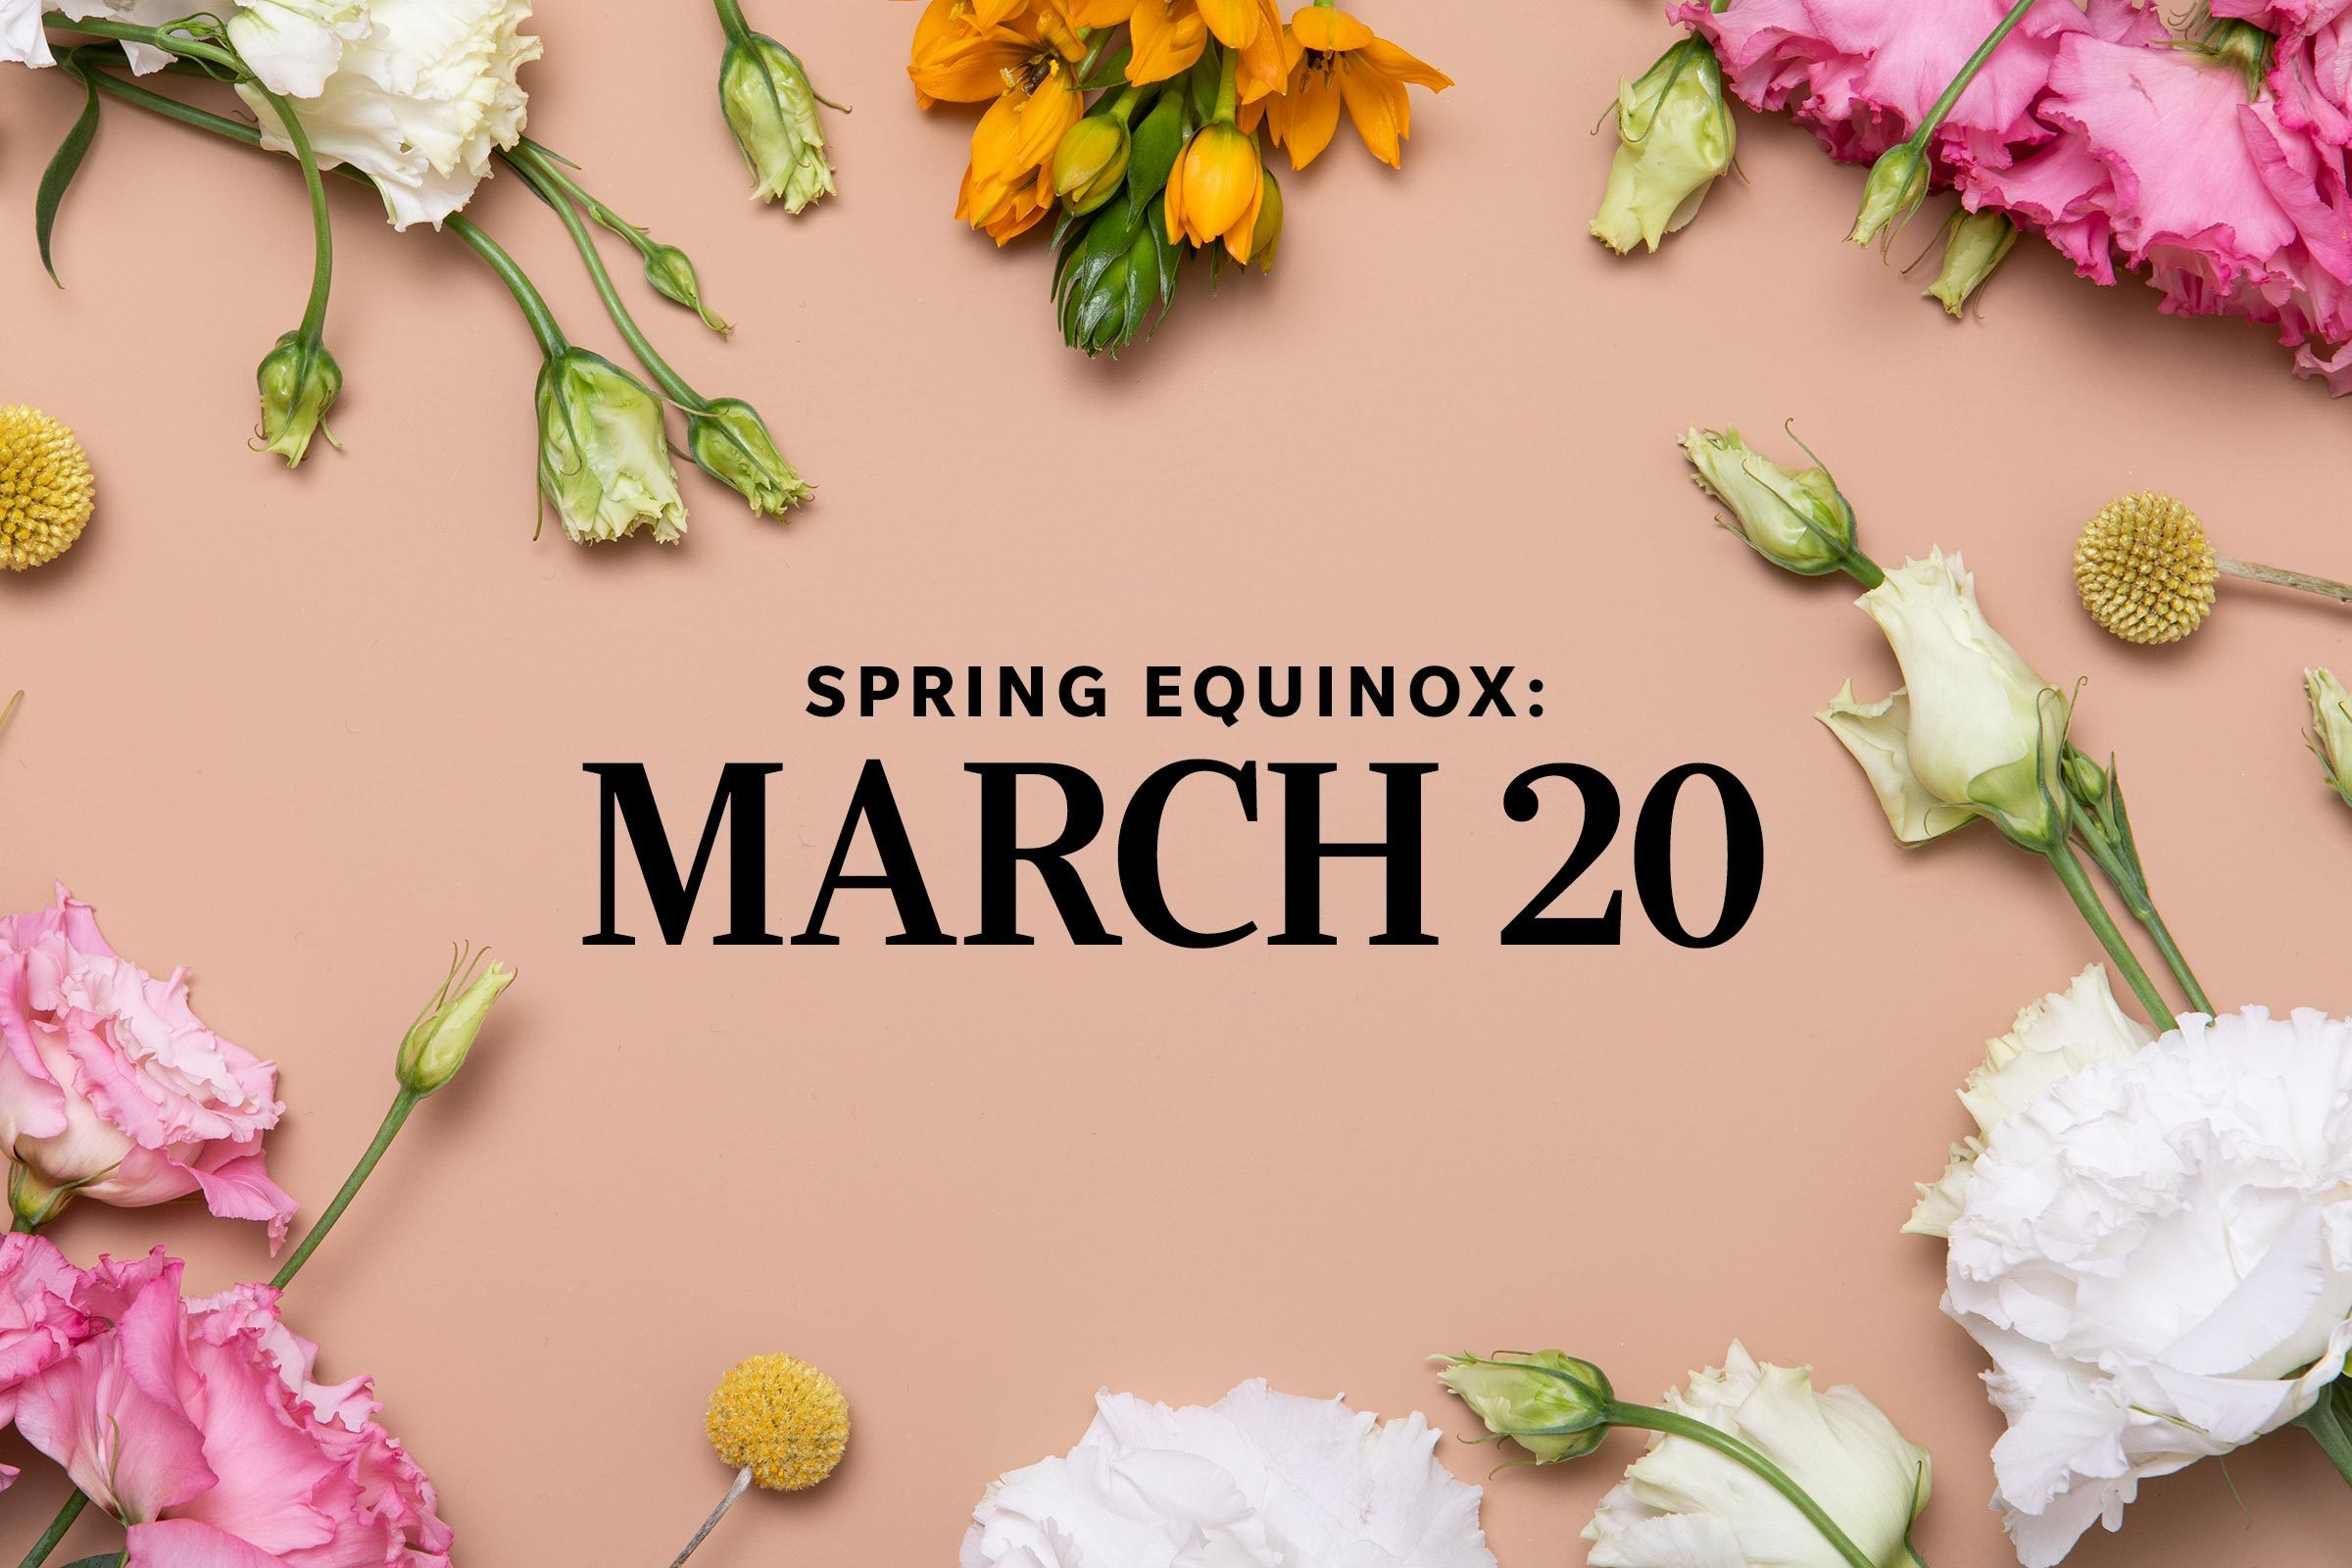 """floral background with text that says """"Spring equinox: march 20"""""""